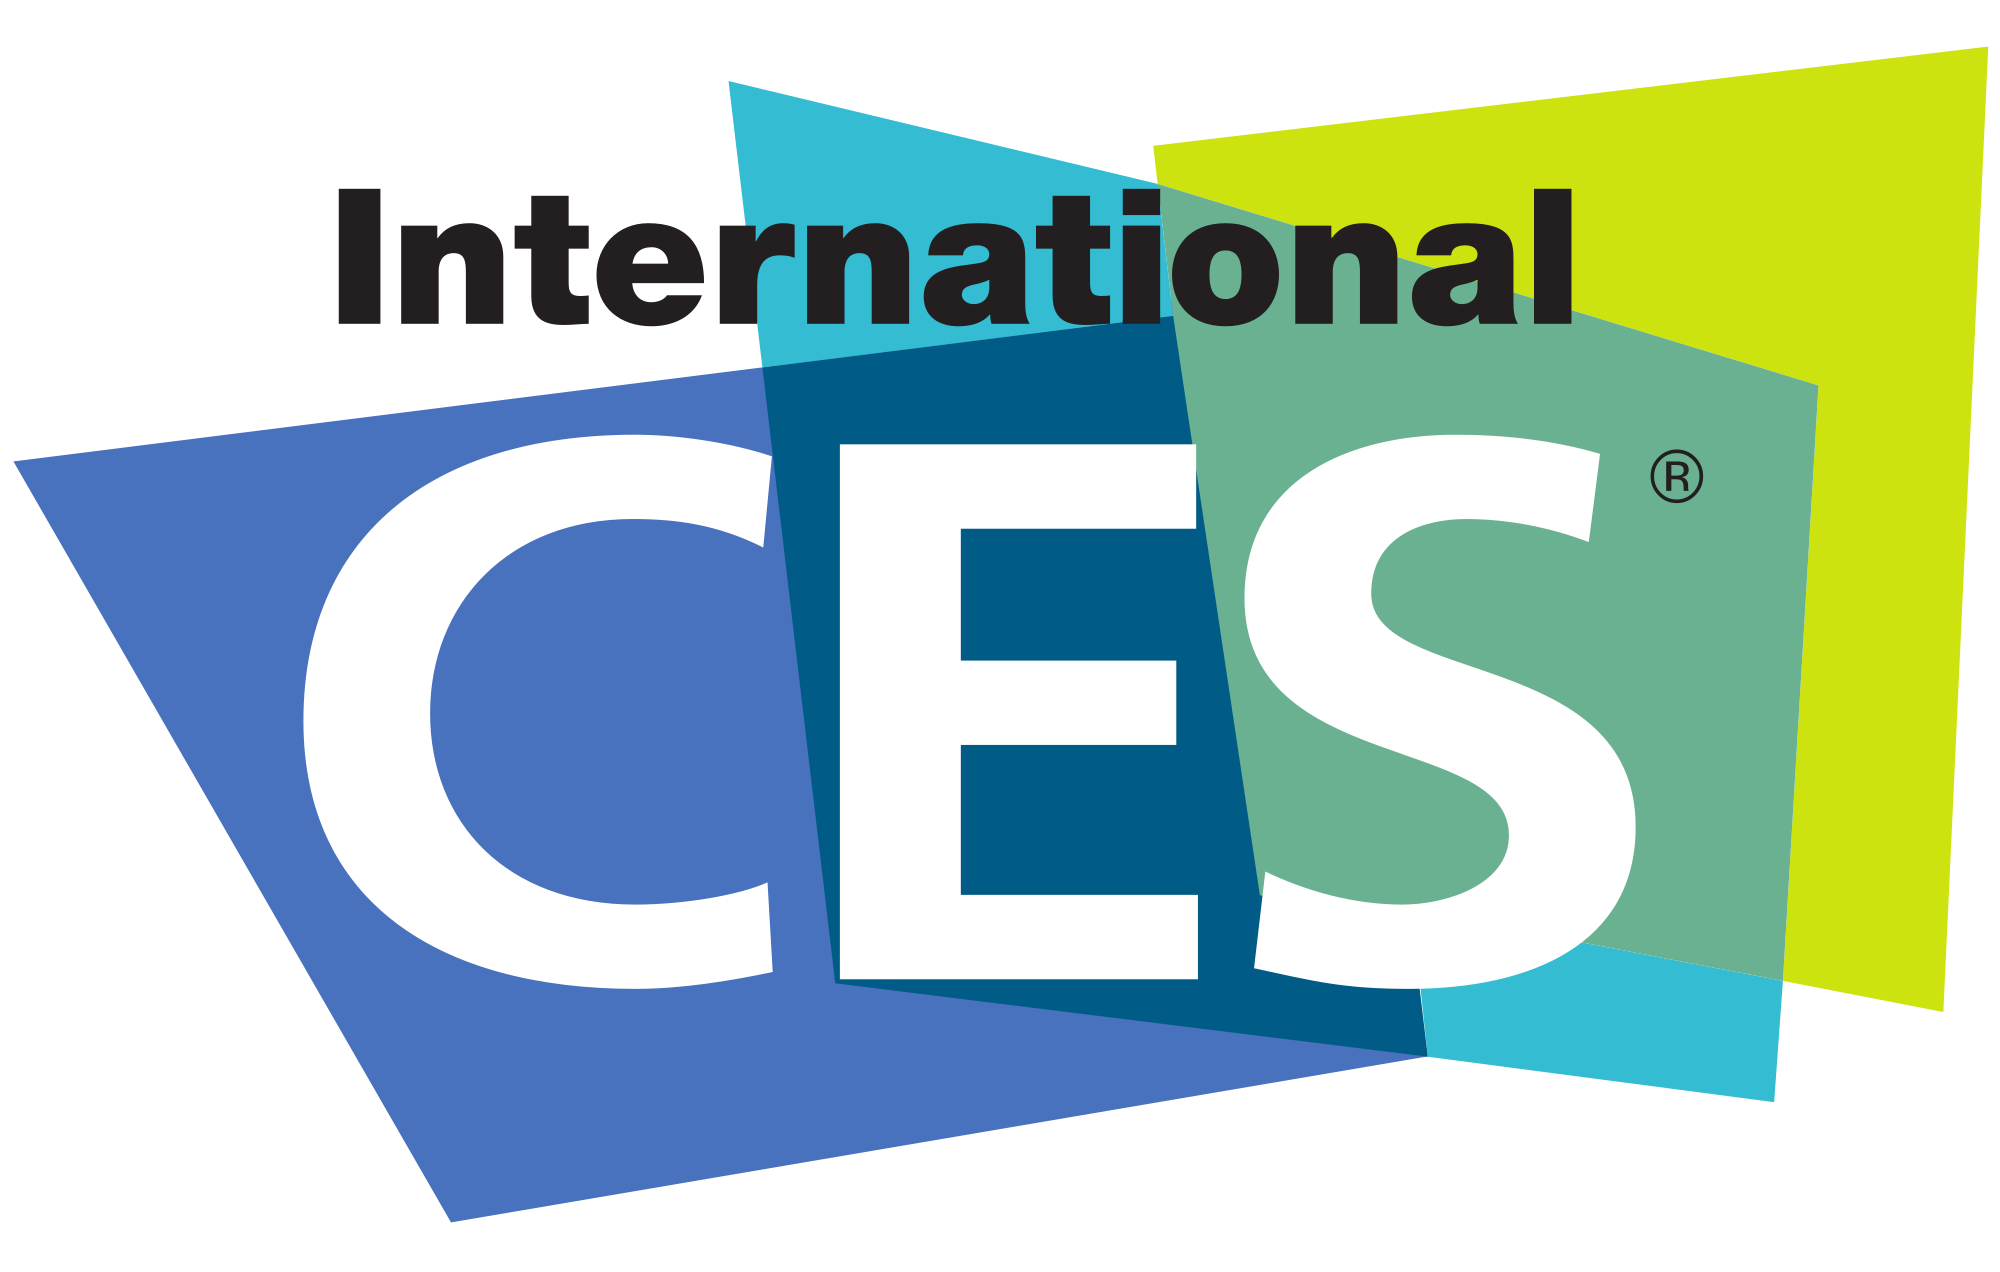 CES 2016 dates and venues announced - AXS